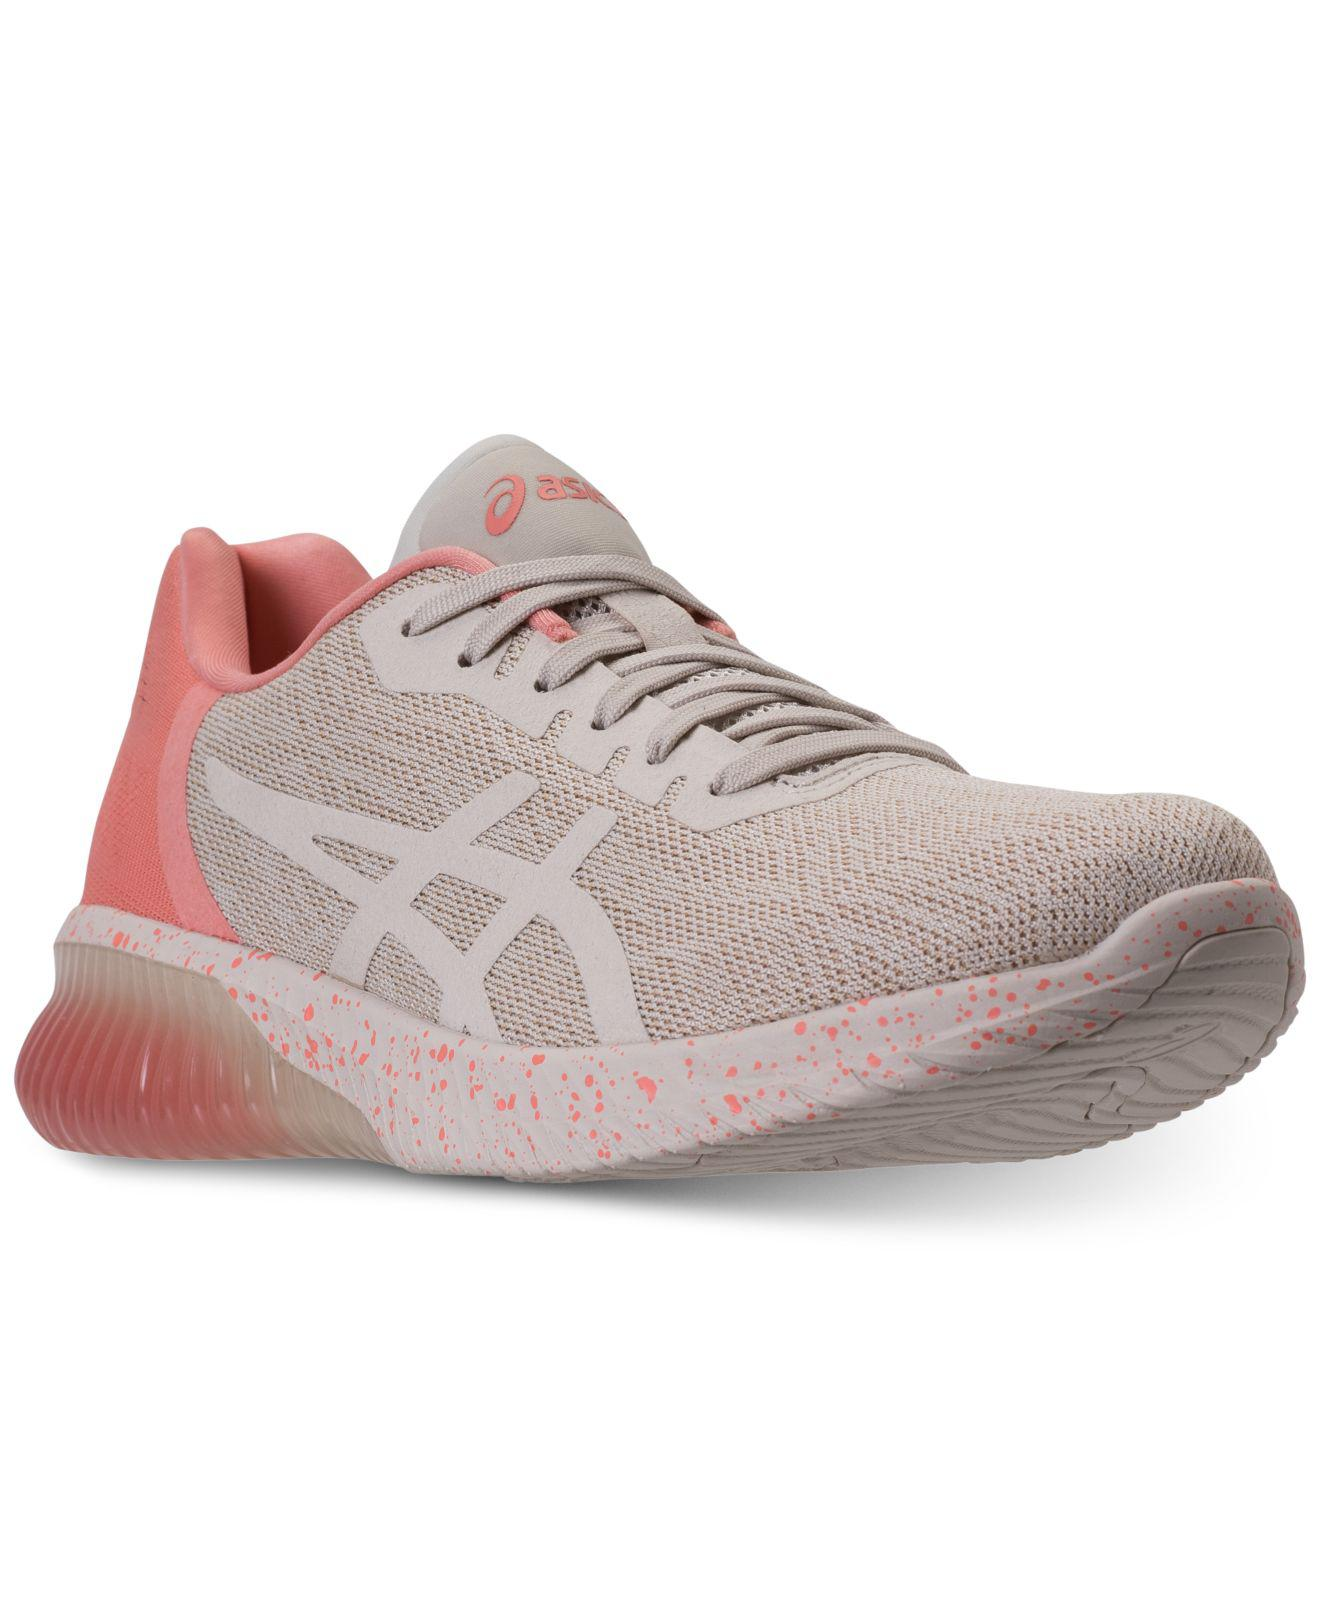 ed63c9388c07 Lyst - Asics Gel-kenun Mx Sp Running Sneakers From Finish Line